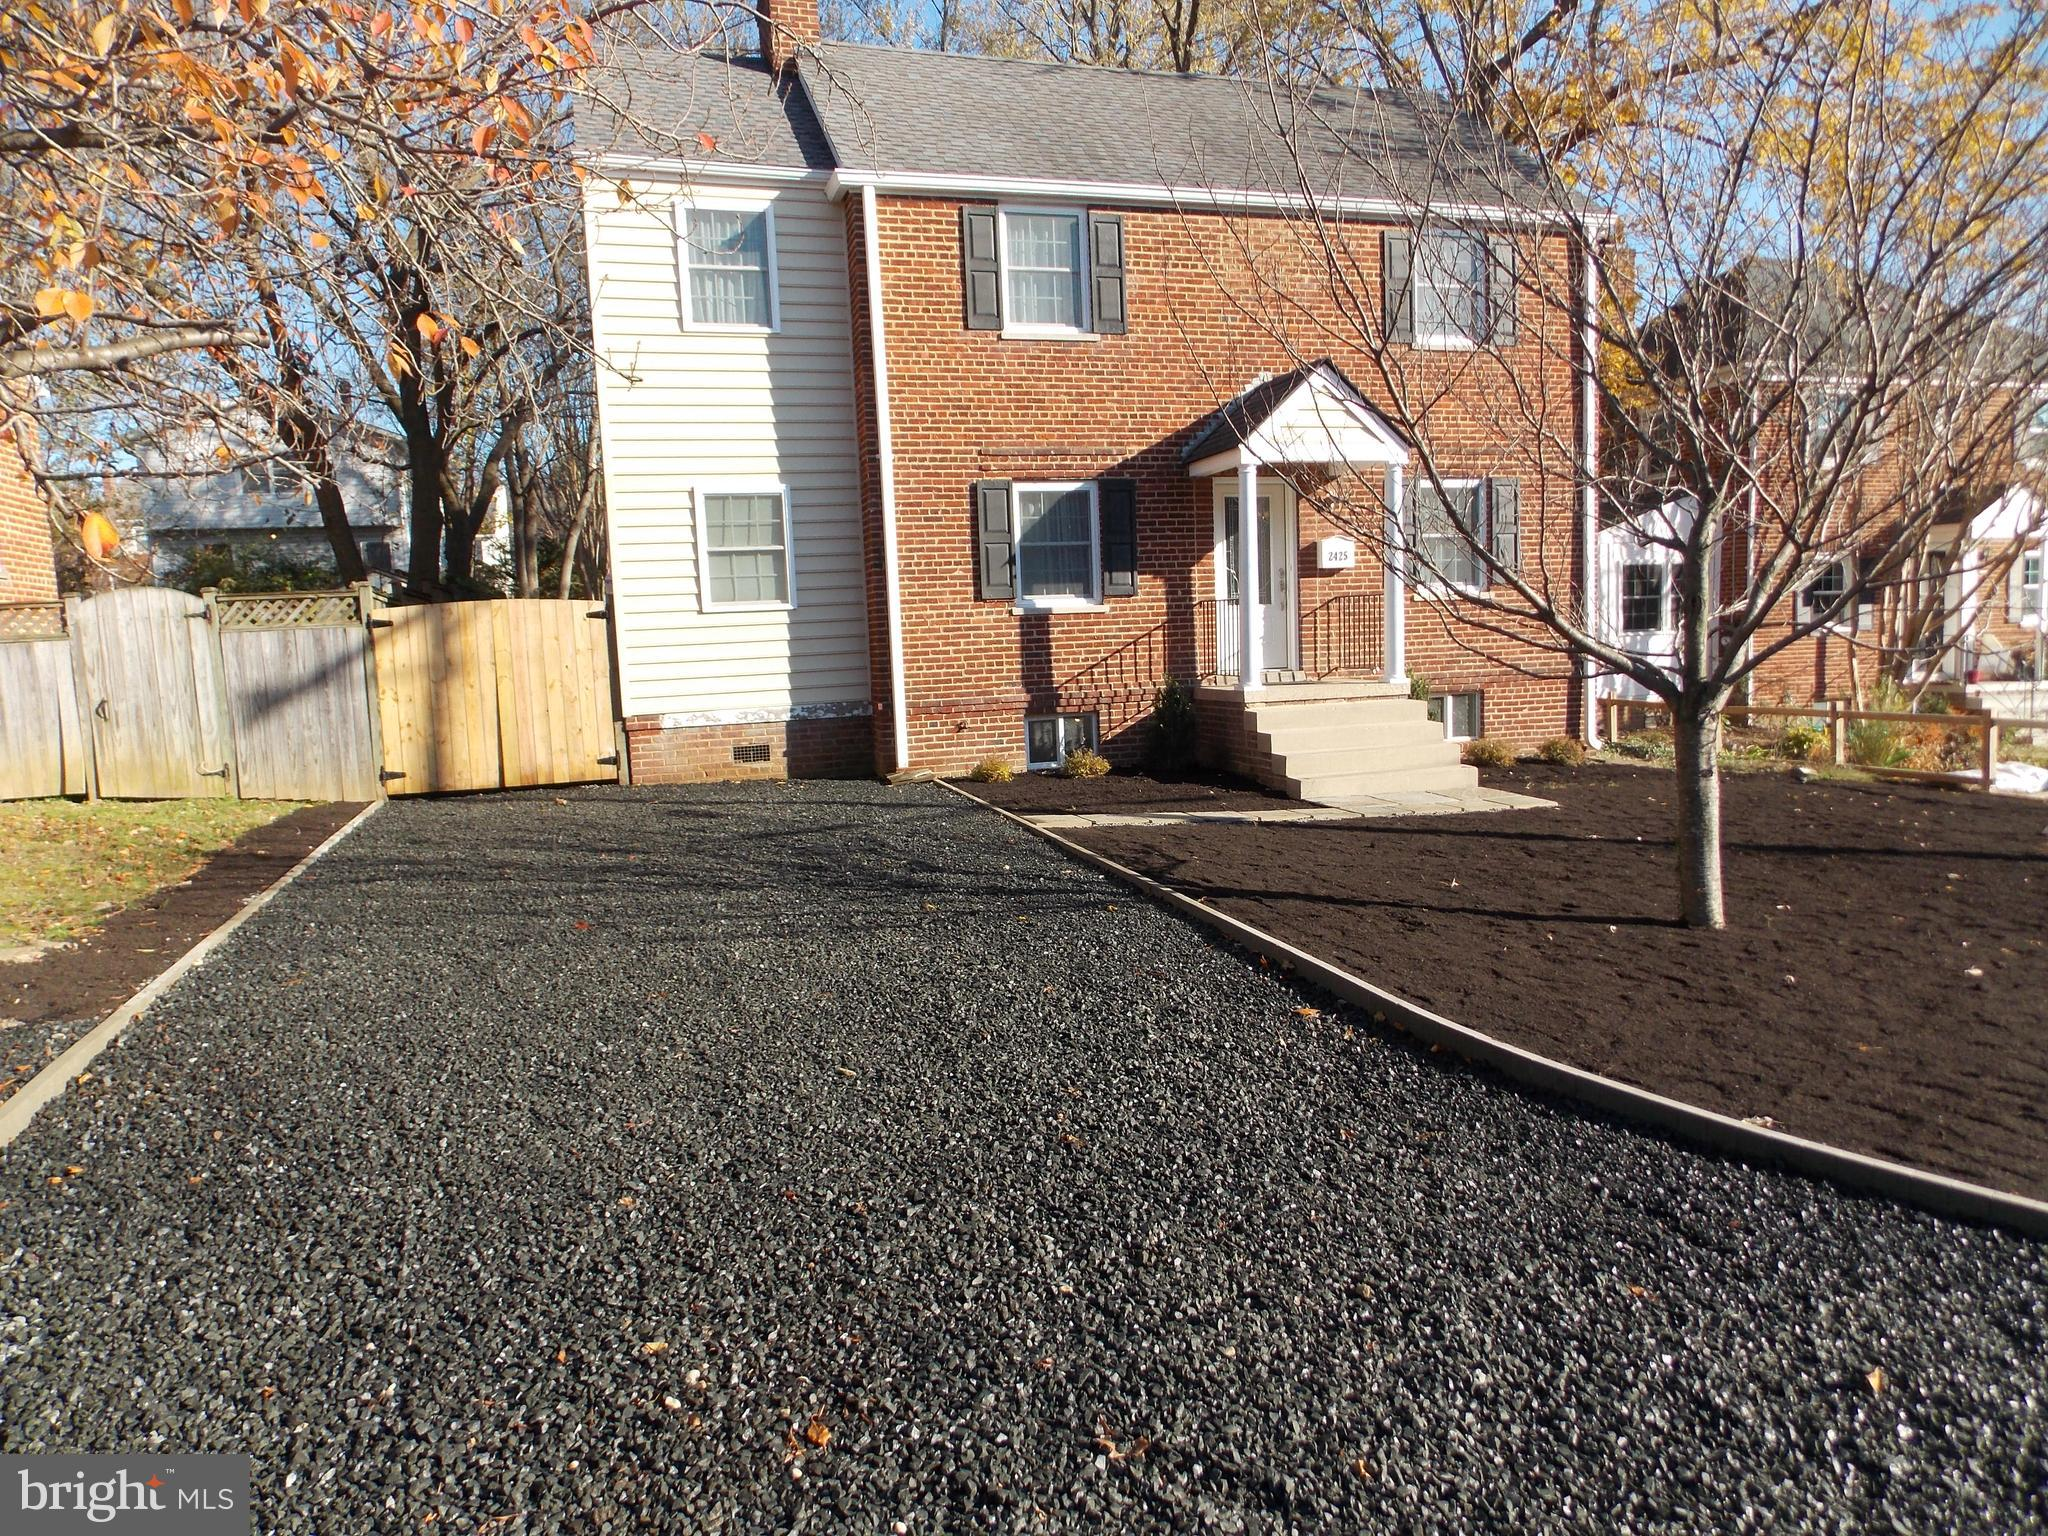 Completely renovated plus 1000 SF addition, large extended kitchen, granite counter-tops, island, breakfast bar, new bathrooms, master suite, second floor laundry. all new plumbing, upgraded electric.  Great neighbors in a great neighborhood.  Walk your younger kids to school.  Easy commute to DC.